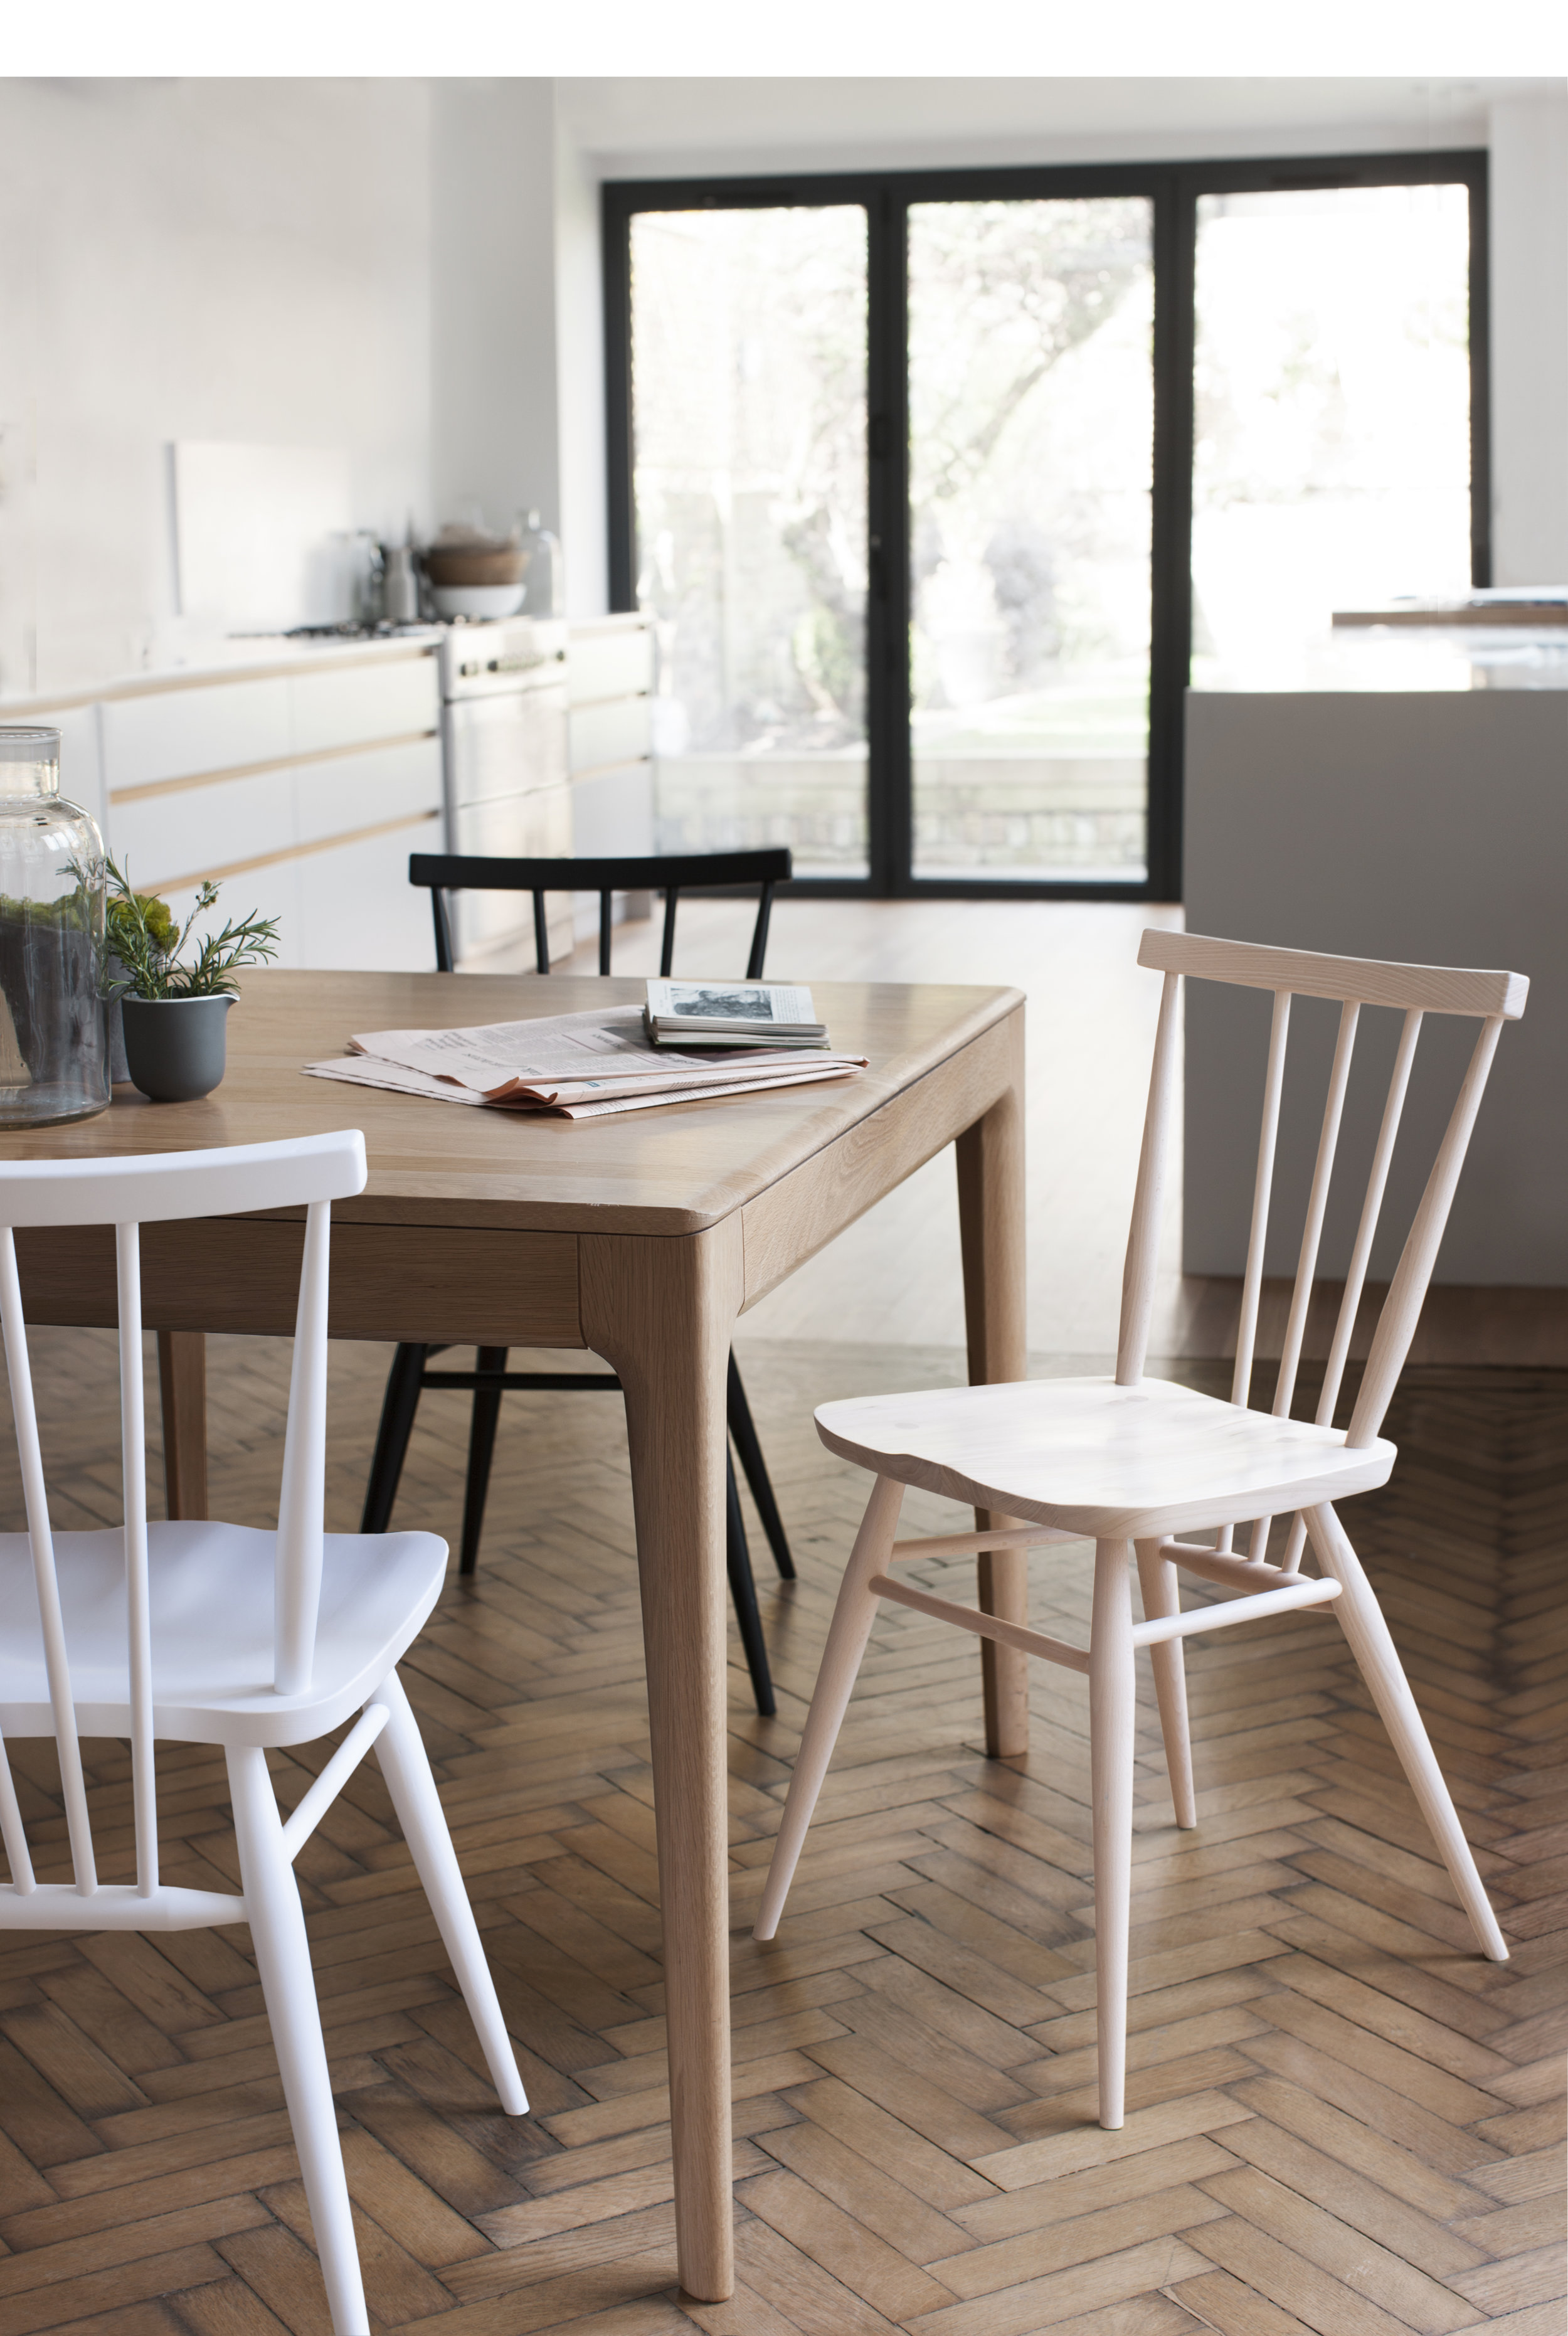 ercol 3355 all-purpose chair natural and white finishes and 2640 romana small extending table.jpg copy.jpg